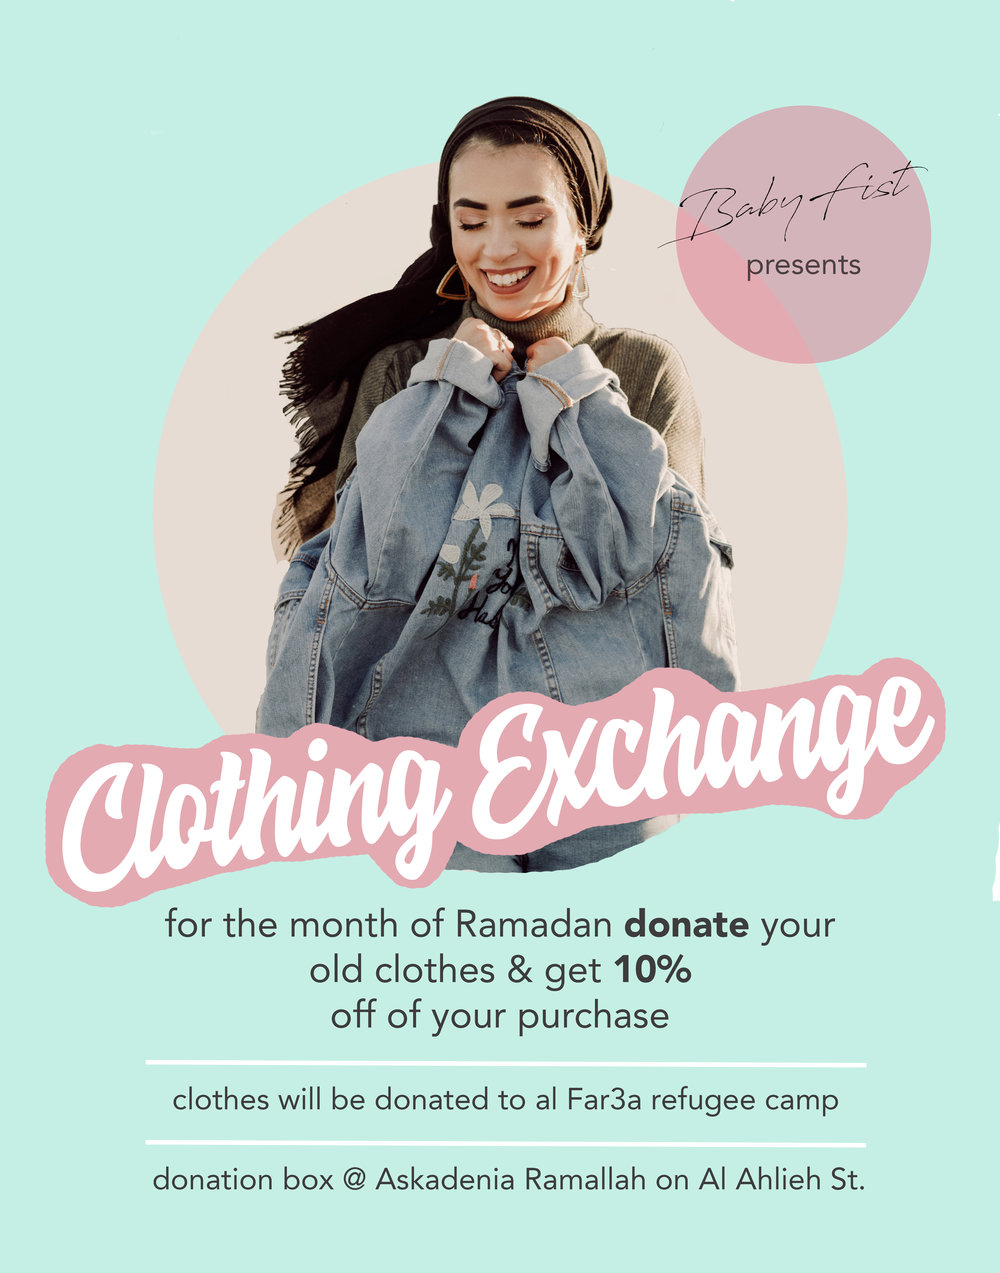 clothes_exchange_poster.jpg